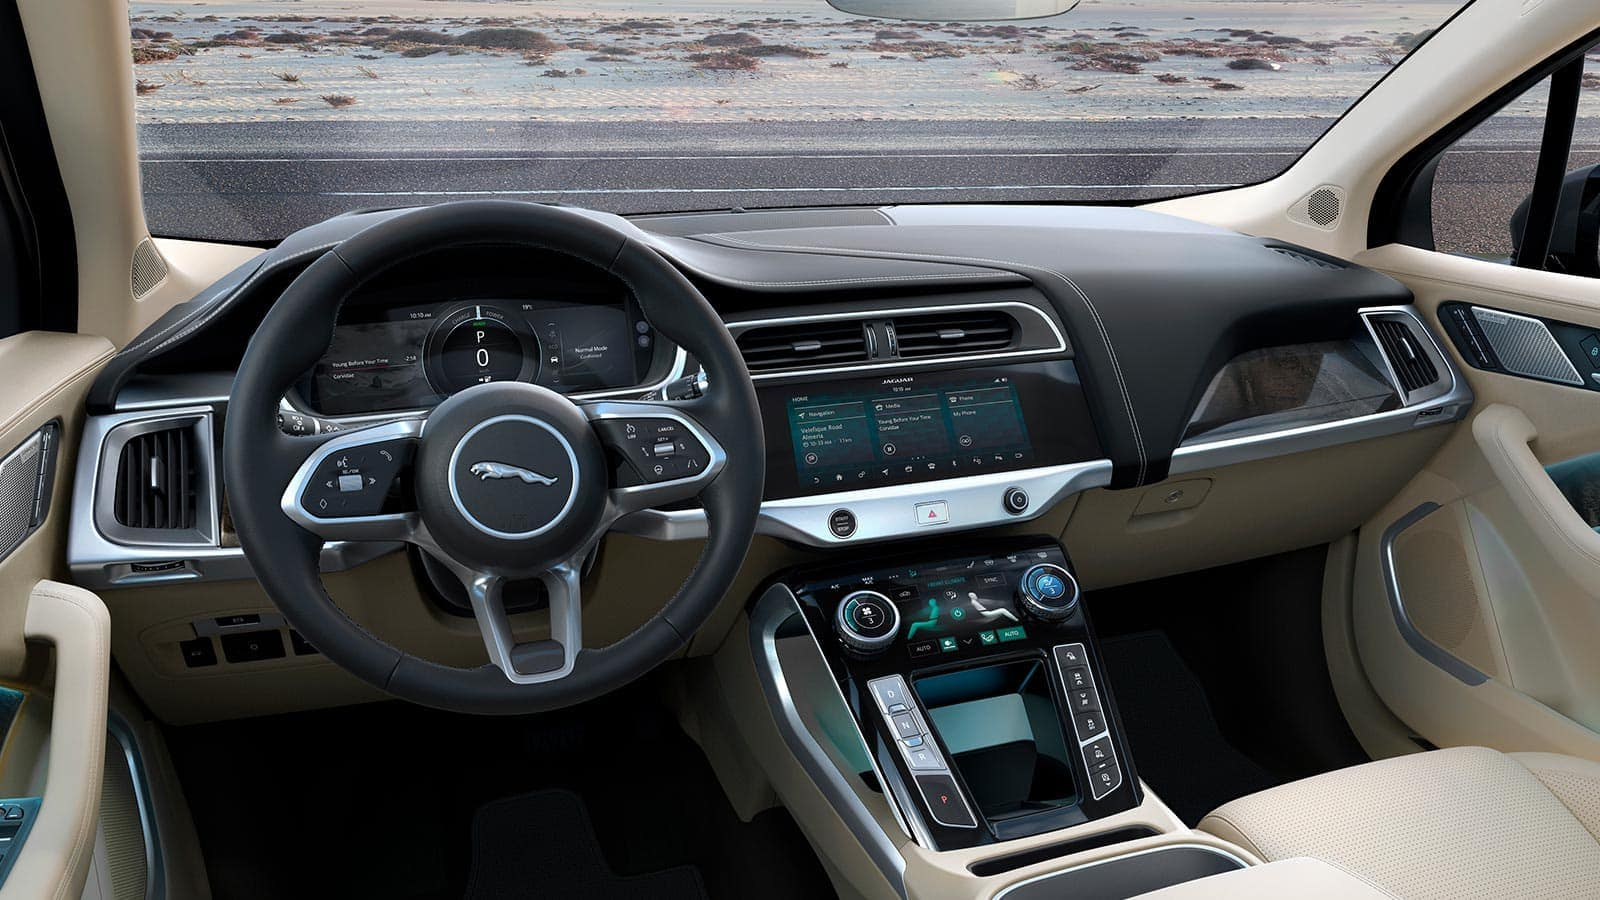 2019 Jaguar I Pace interior